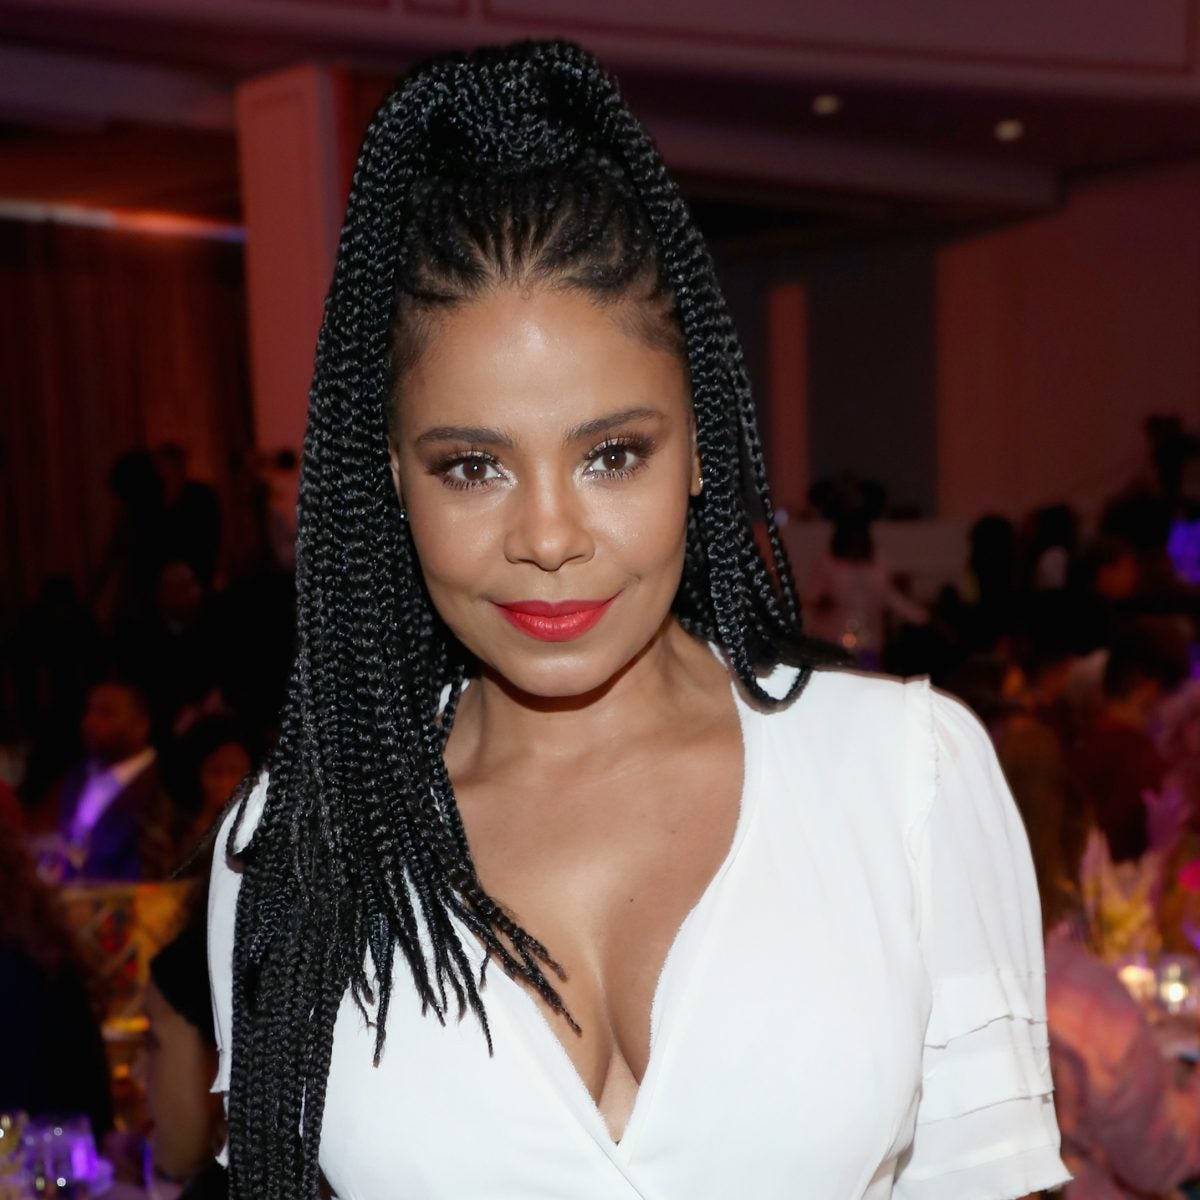 Sanaa Lathan Took Our Breath Away With These Vacation Photos